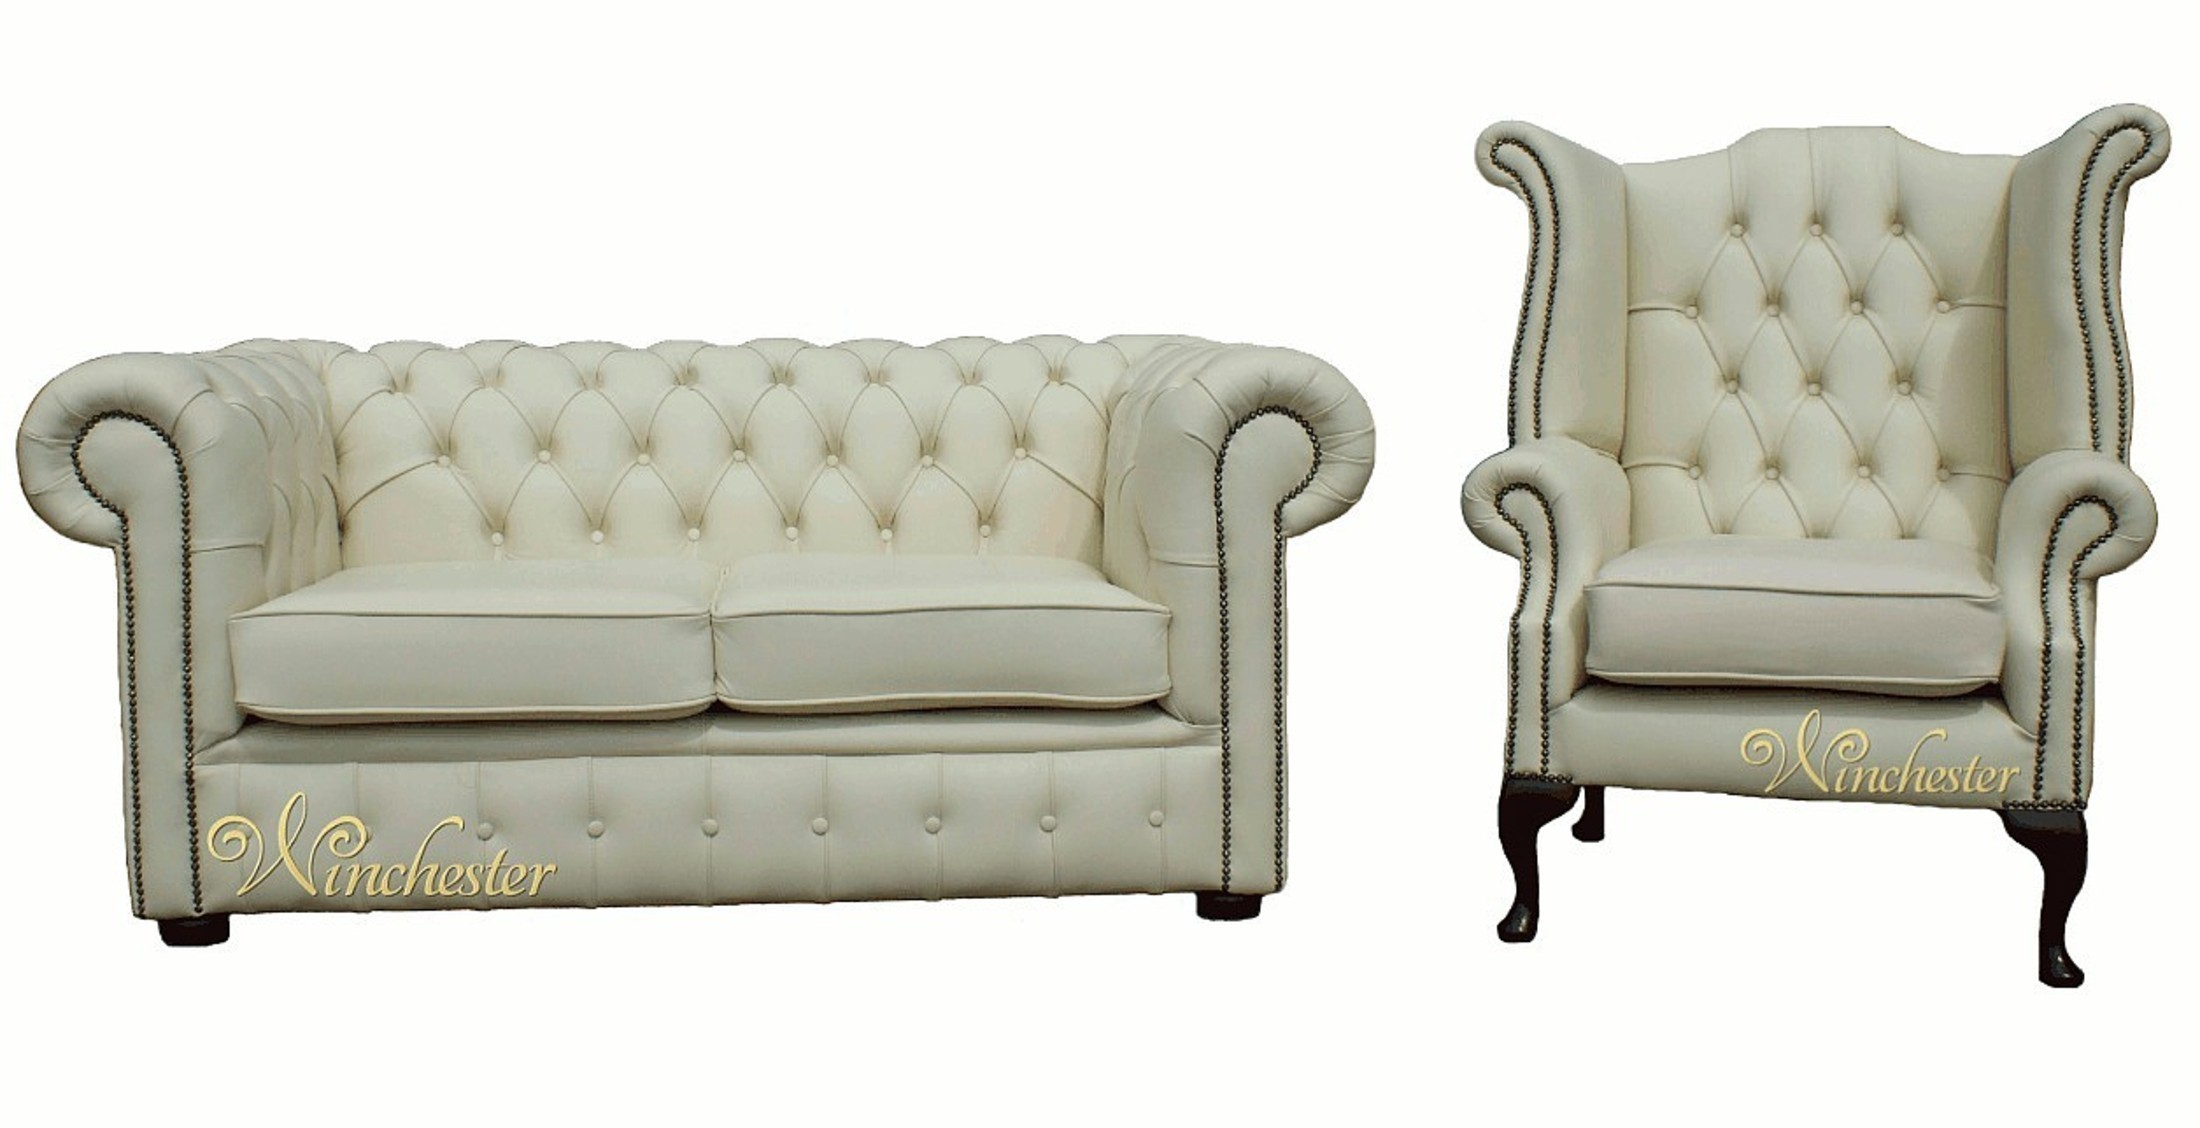 ... Cream Leather Sofa Offer. Chesterfield 2 Seater Wing Chair Wc